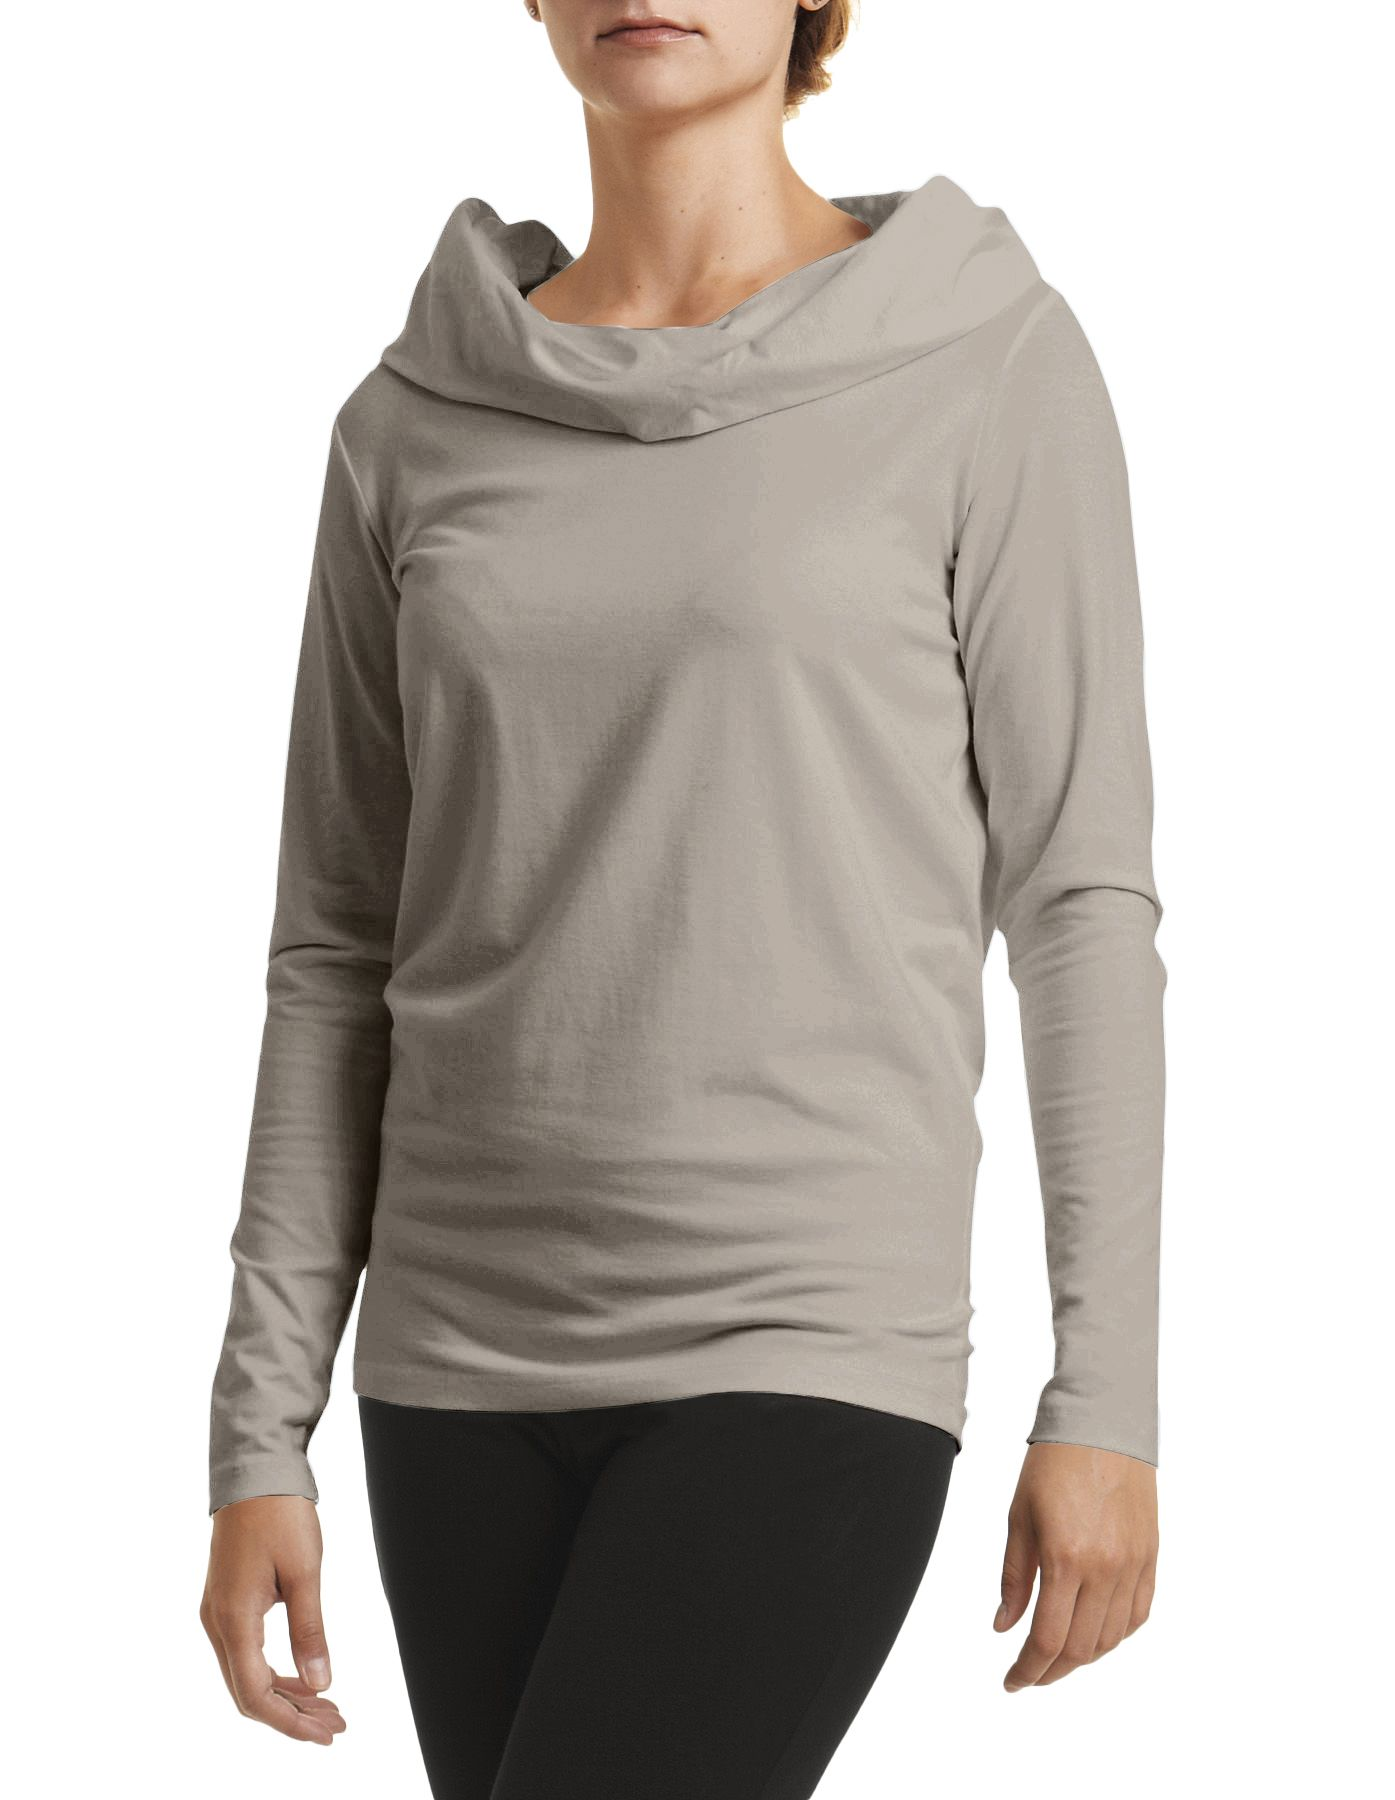 TUN #hoodie #safari #figclothing #madeinCanada #mileend #design #travelwear #athleticwear #comfy #silkysoft #beachwear #fall15 #sweater #shopping $90 http://www.figclothing.com/en/collections/safari/safari/tun-10-195/?s=14_52_9